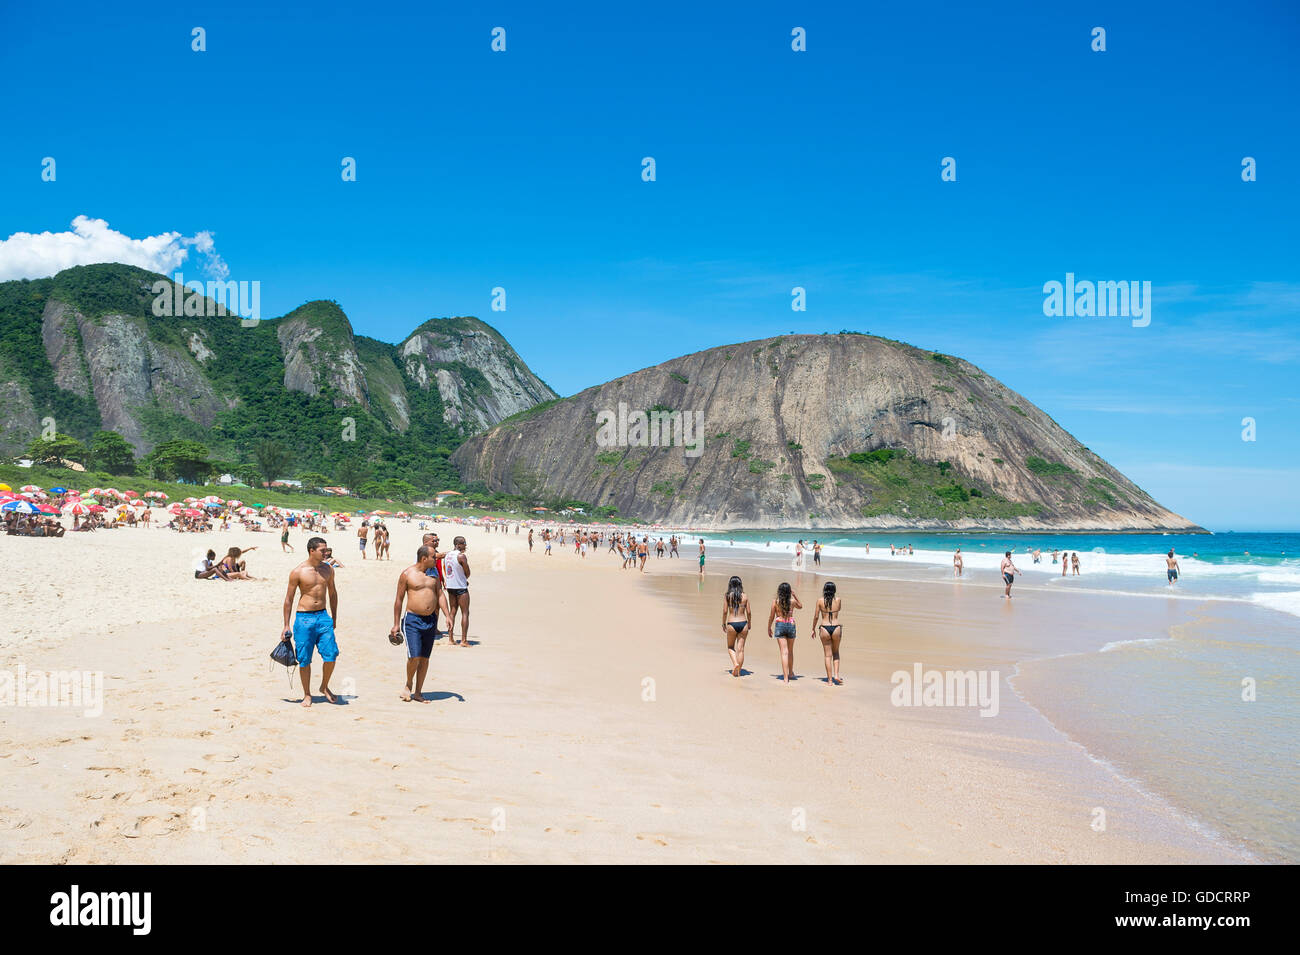 RIO DE JANEIRO - OCTOBER 31, 2015: Young Brazilians walk on the shore of Itacoatiara Beach, popular for surfing - Stock Image